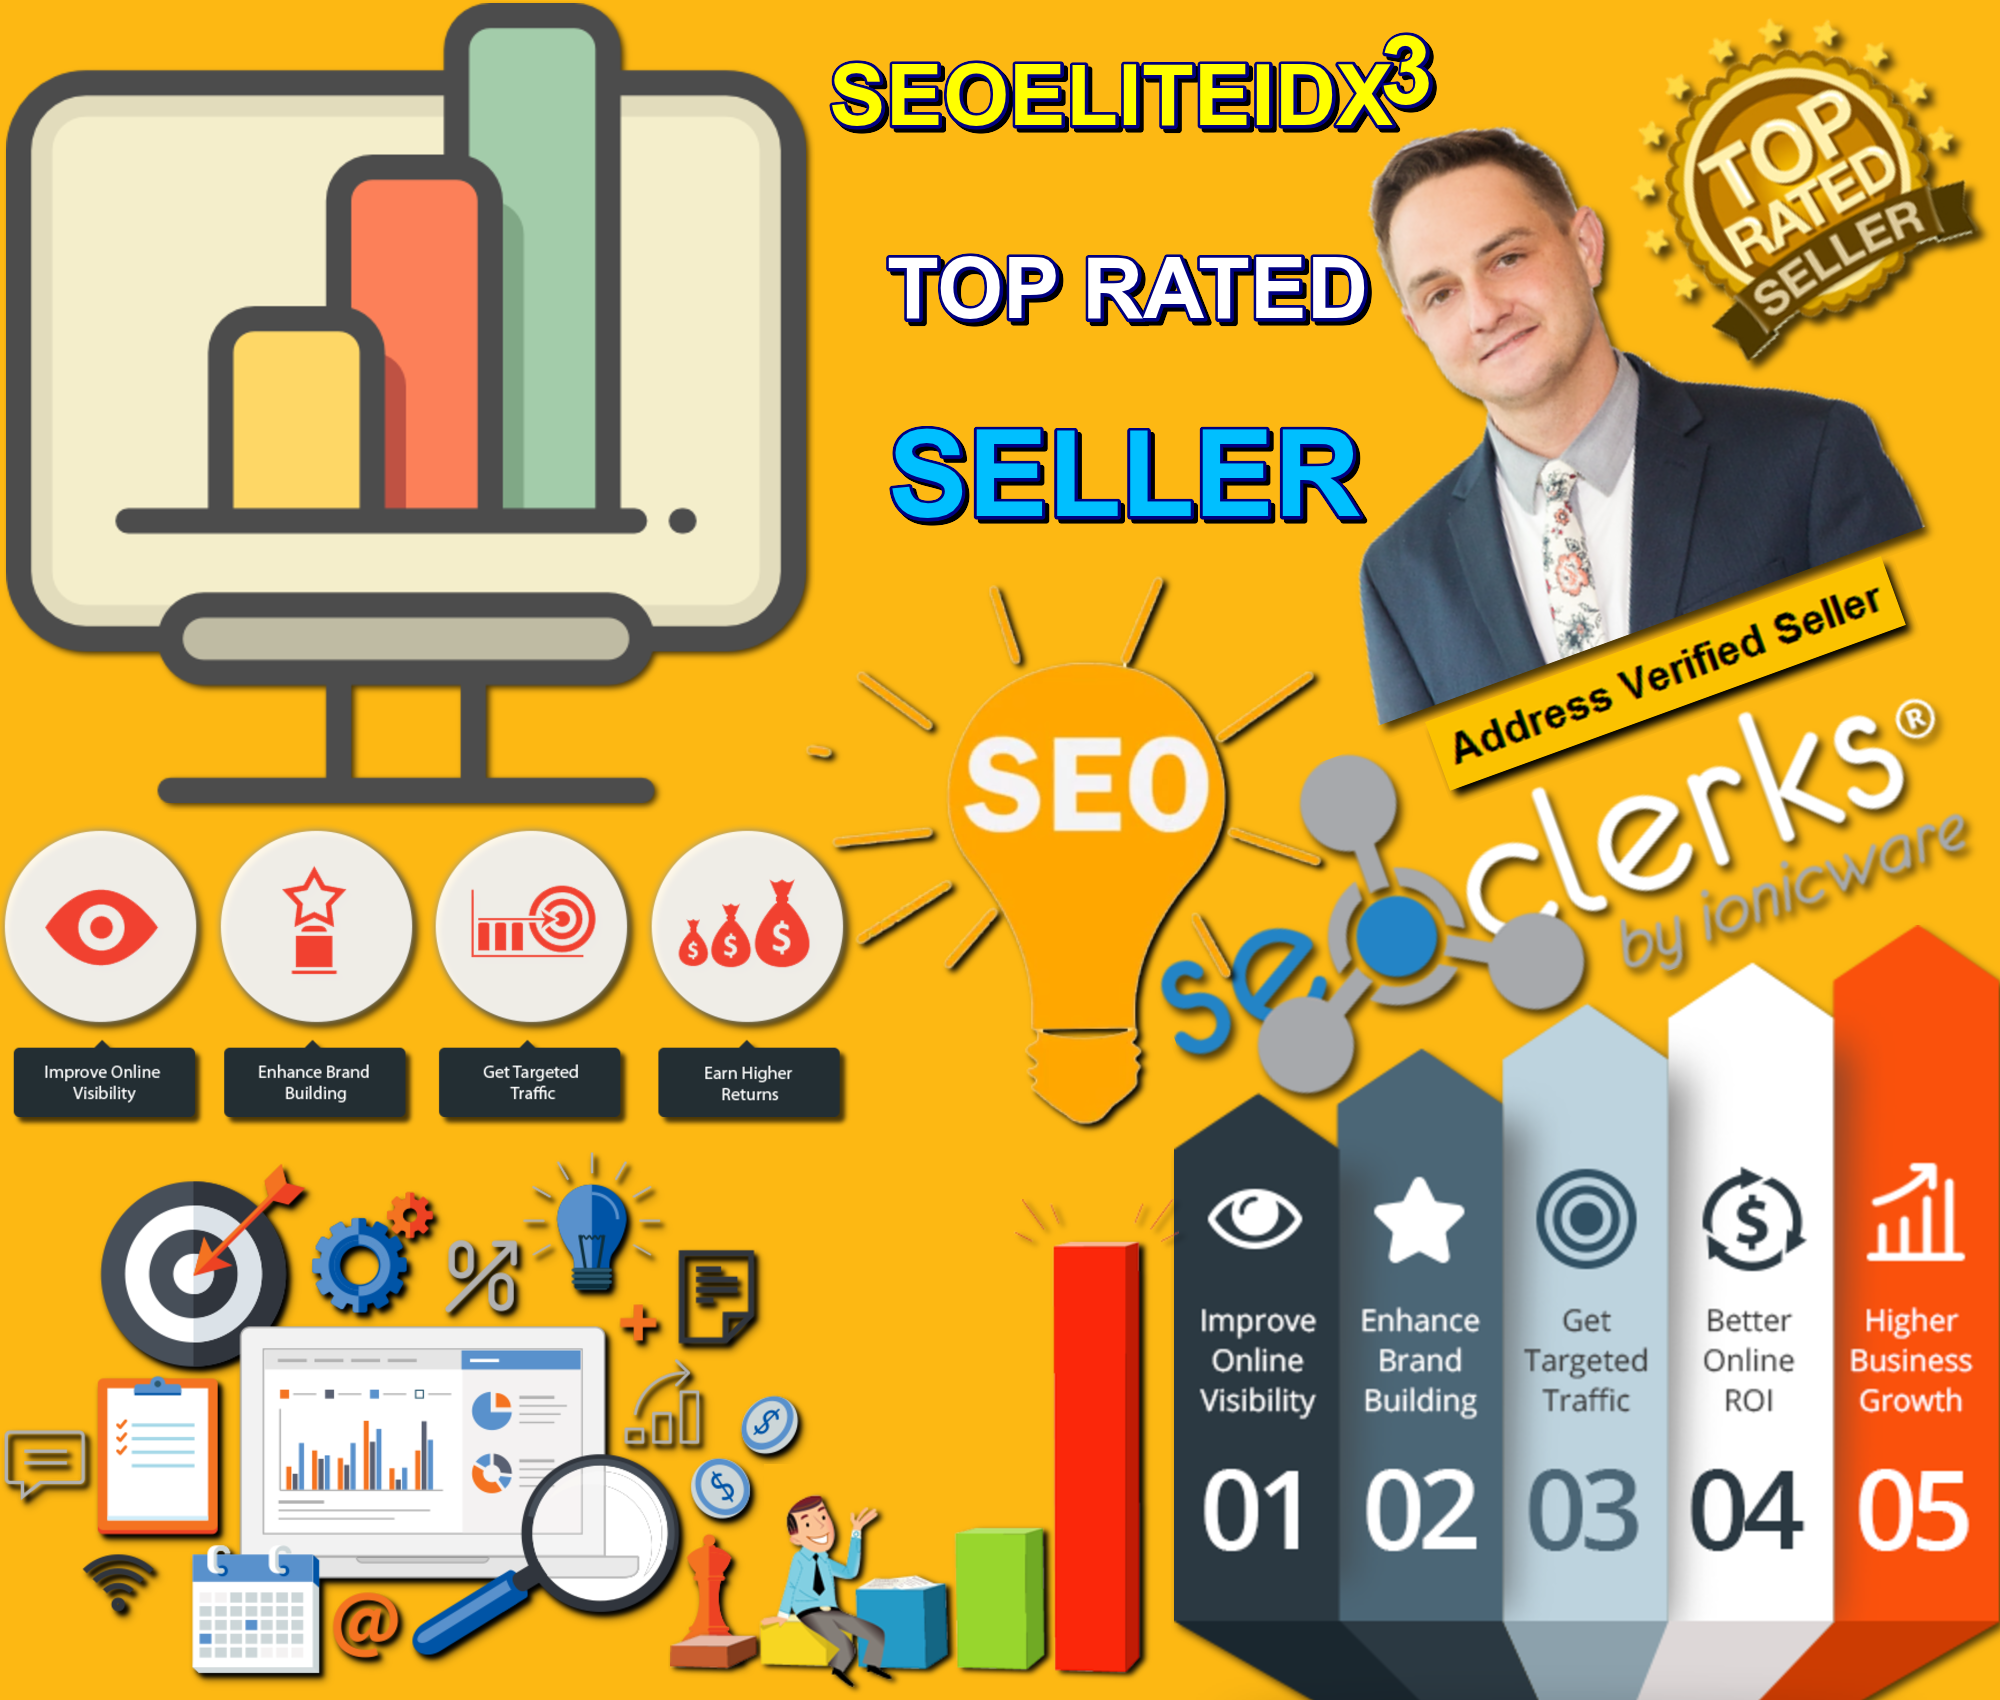 Get Powerful 10 Million Worldwide With USA Website Social Media Views Traffic Will Shoot Your WebSite Into TOP Boost Help To Rankings 1ST Page Google Guaranteed